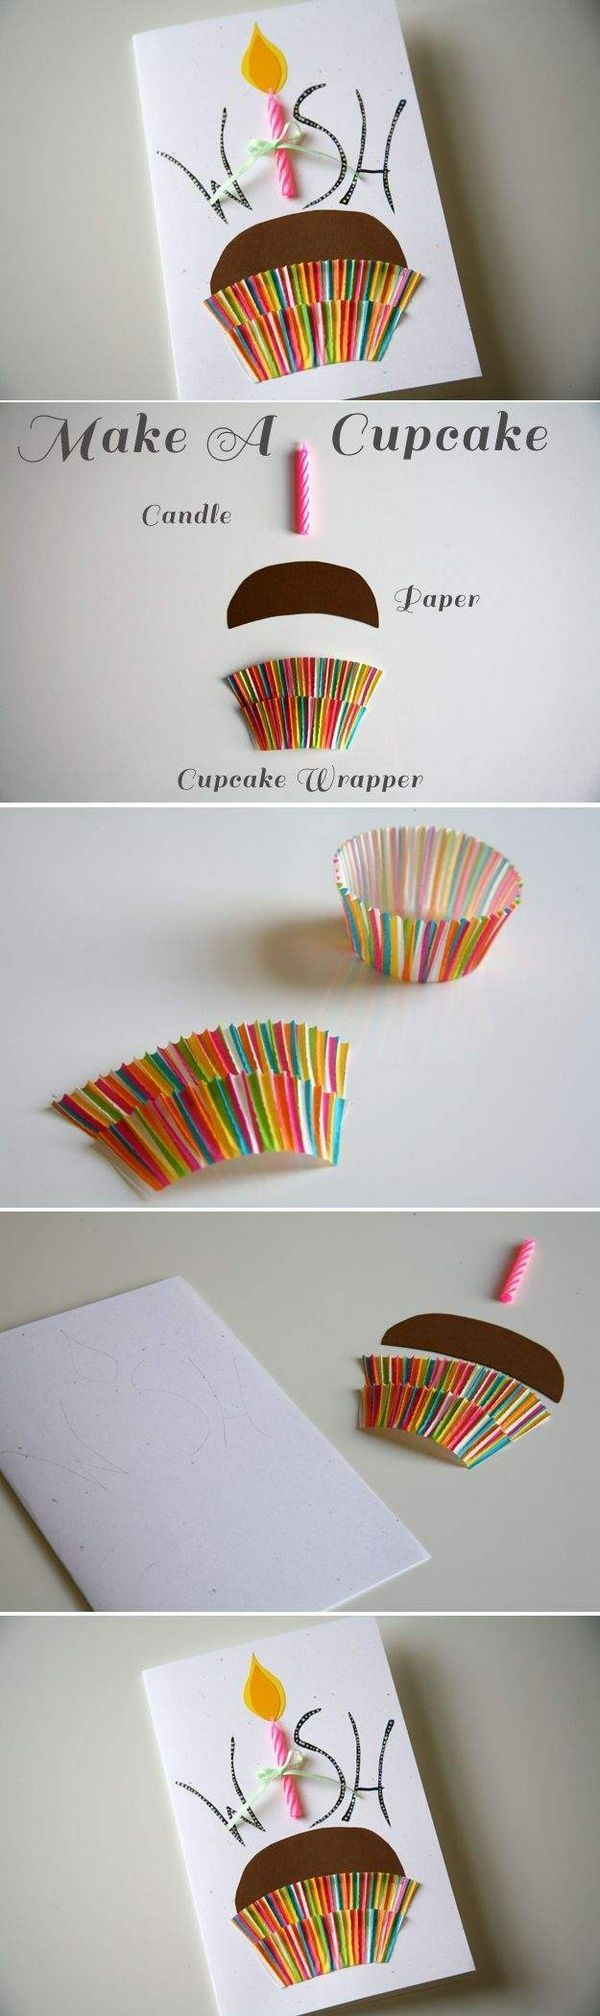 Birthday Cards-Cupcake Candle Make a Wish.  Simple to make using a candle and a colorful cupcake wrapper. Must make this no-calorie birthday treat! Georganna Louise onto Cards-Handmade.